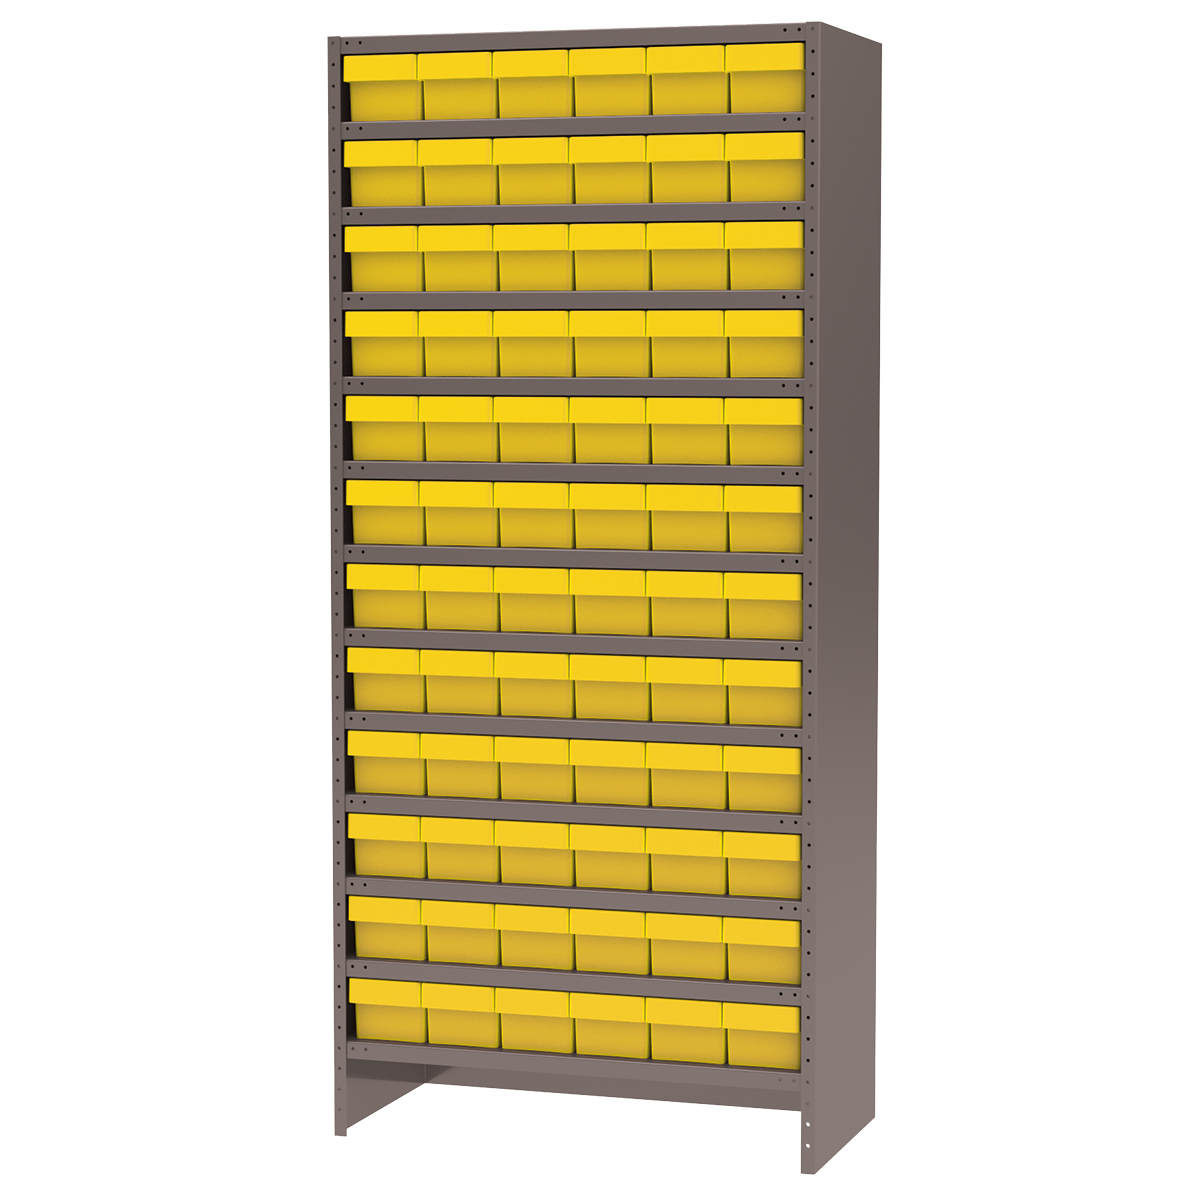 Enclosed Steel Shelving Kit, 18x36x79, 72 AkroDrawers, Gray/Yellow.  This item sold in carton quantities of 1.